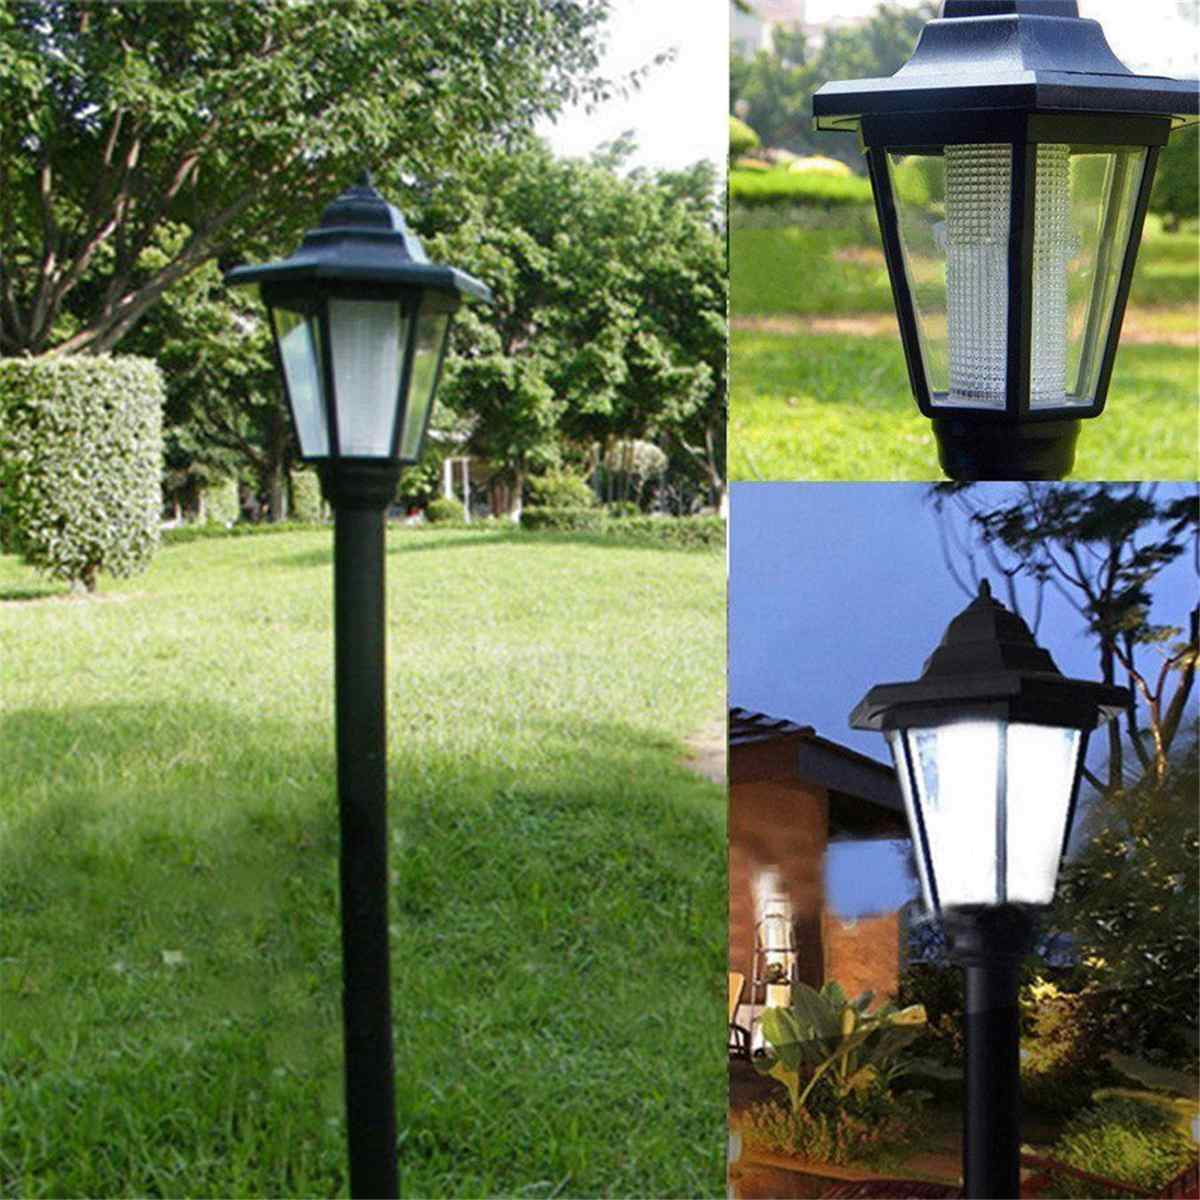 Garden Lanterns Pillar Yard Garden Decoration Lighting White Light LED Solar Light Under Ground Lawn Lamp Post Outdoor